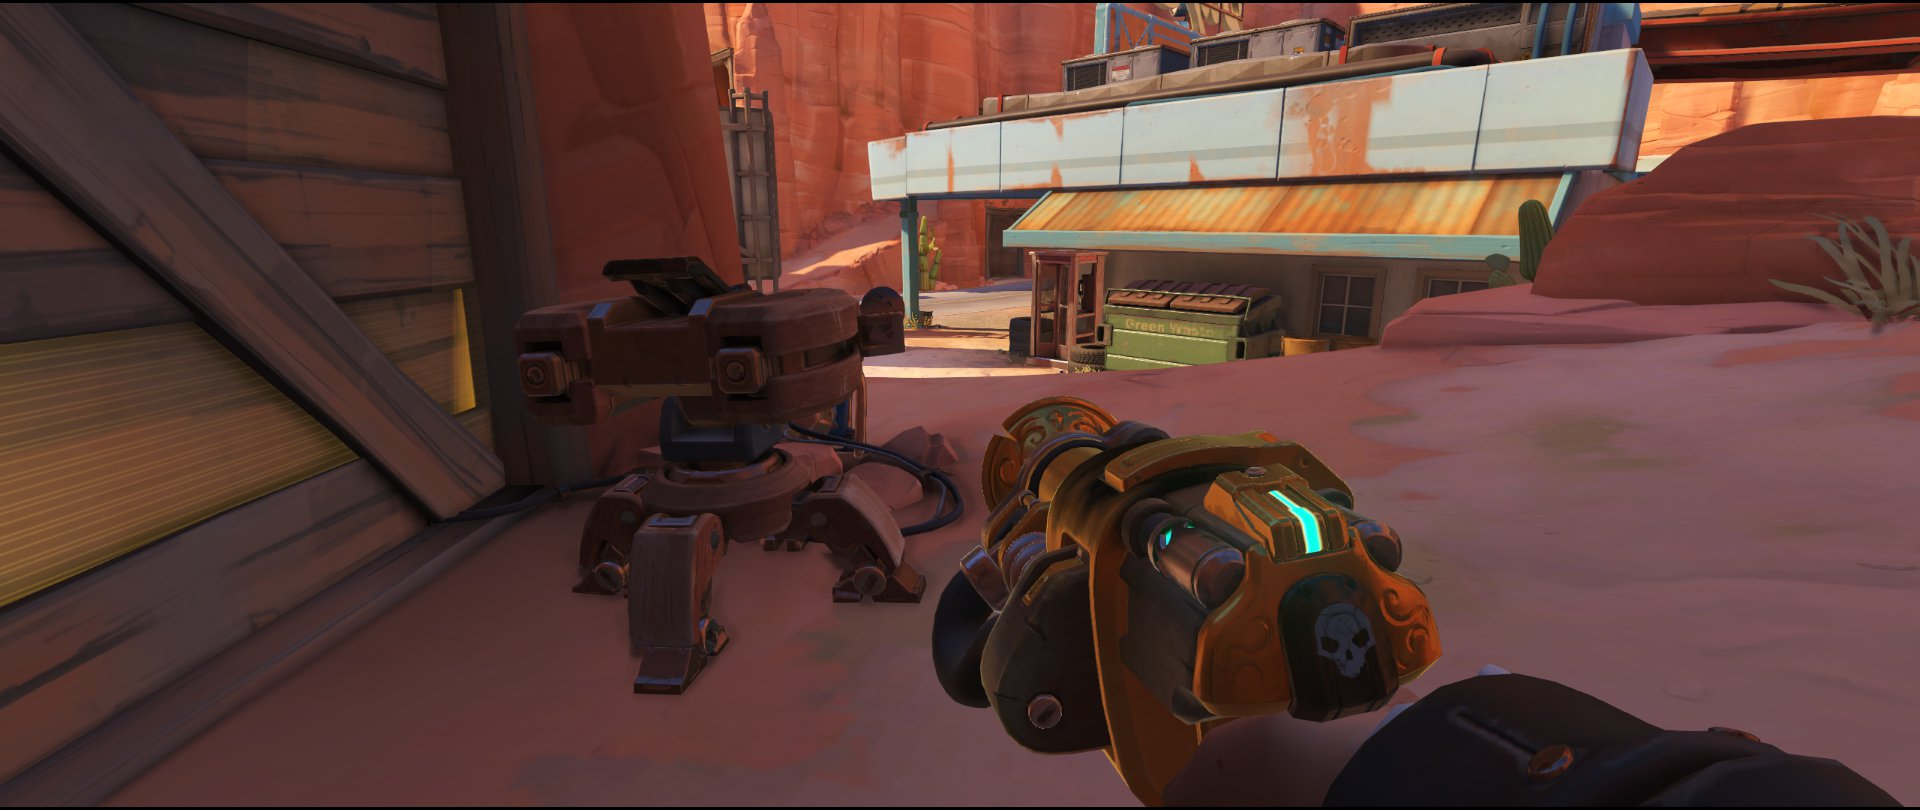 Overwatch Guides: Heroes, Tiers, Meta, Maps, and Wiki   Esports Tales